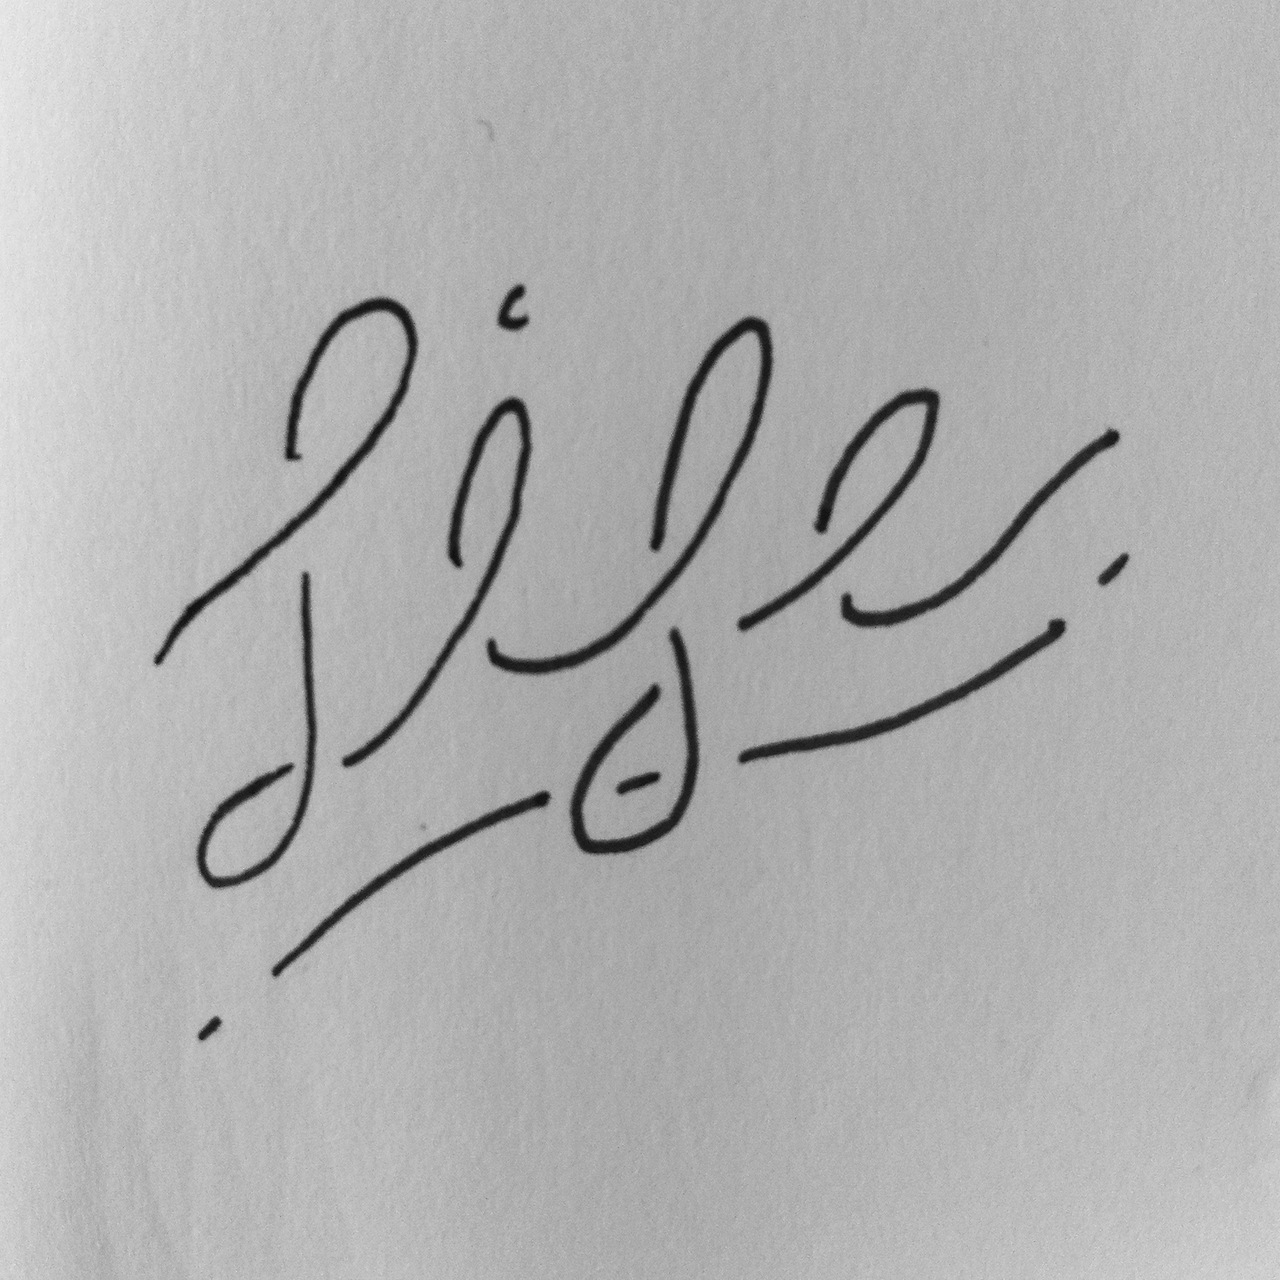 Hand lettering practice - Life.